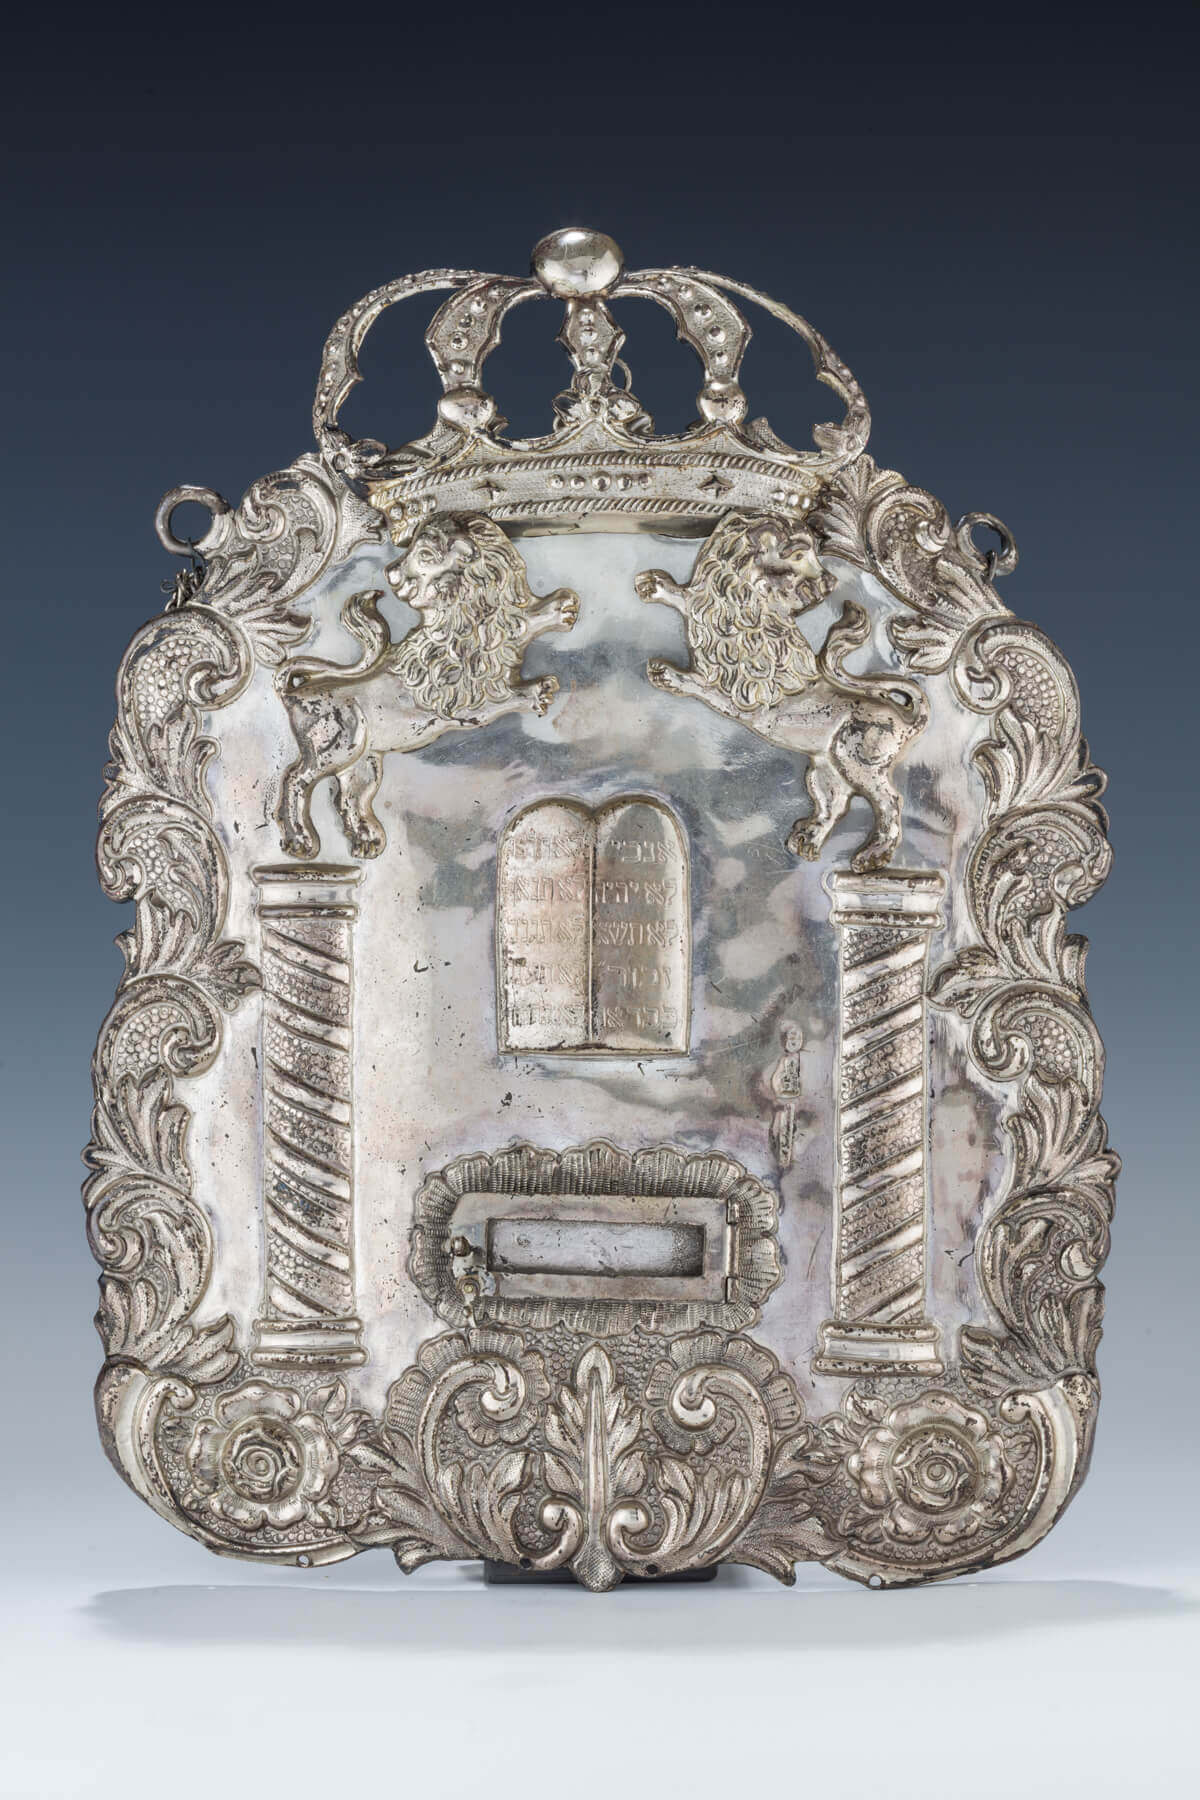 132. A SILVER TORAH SHIELD